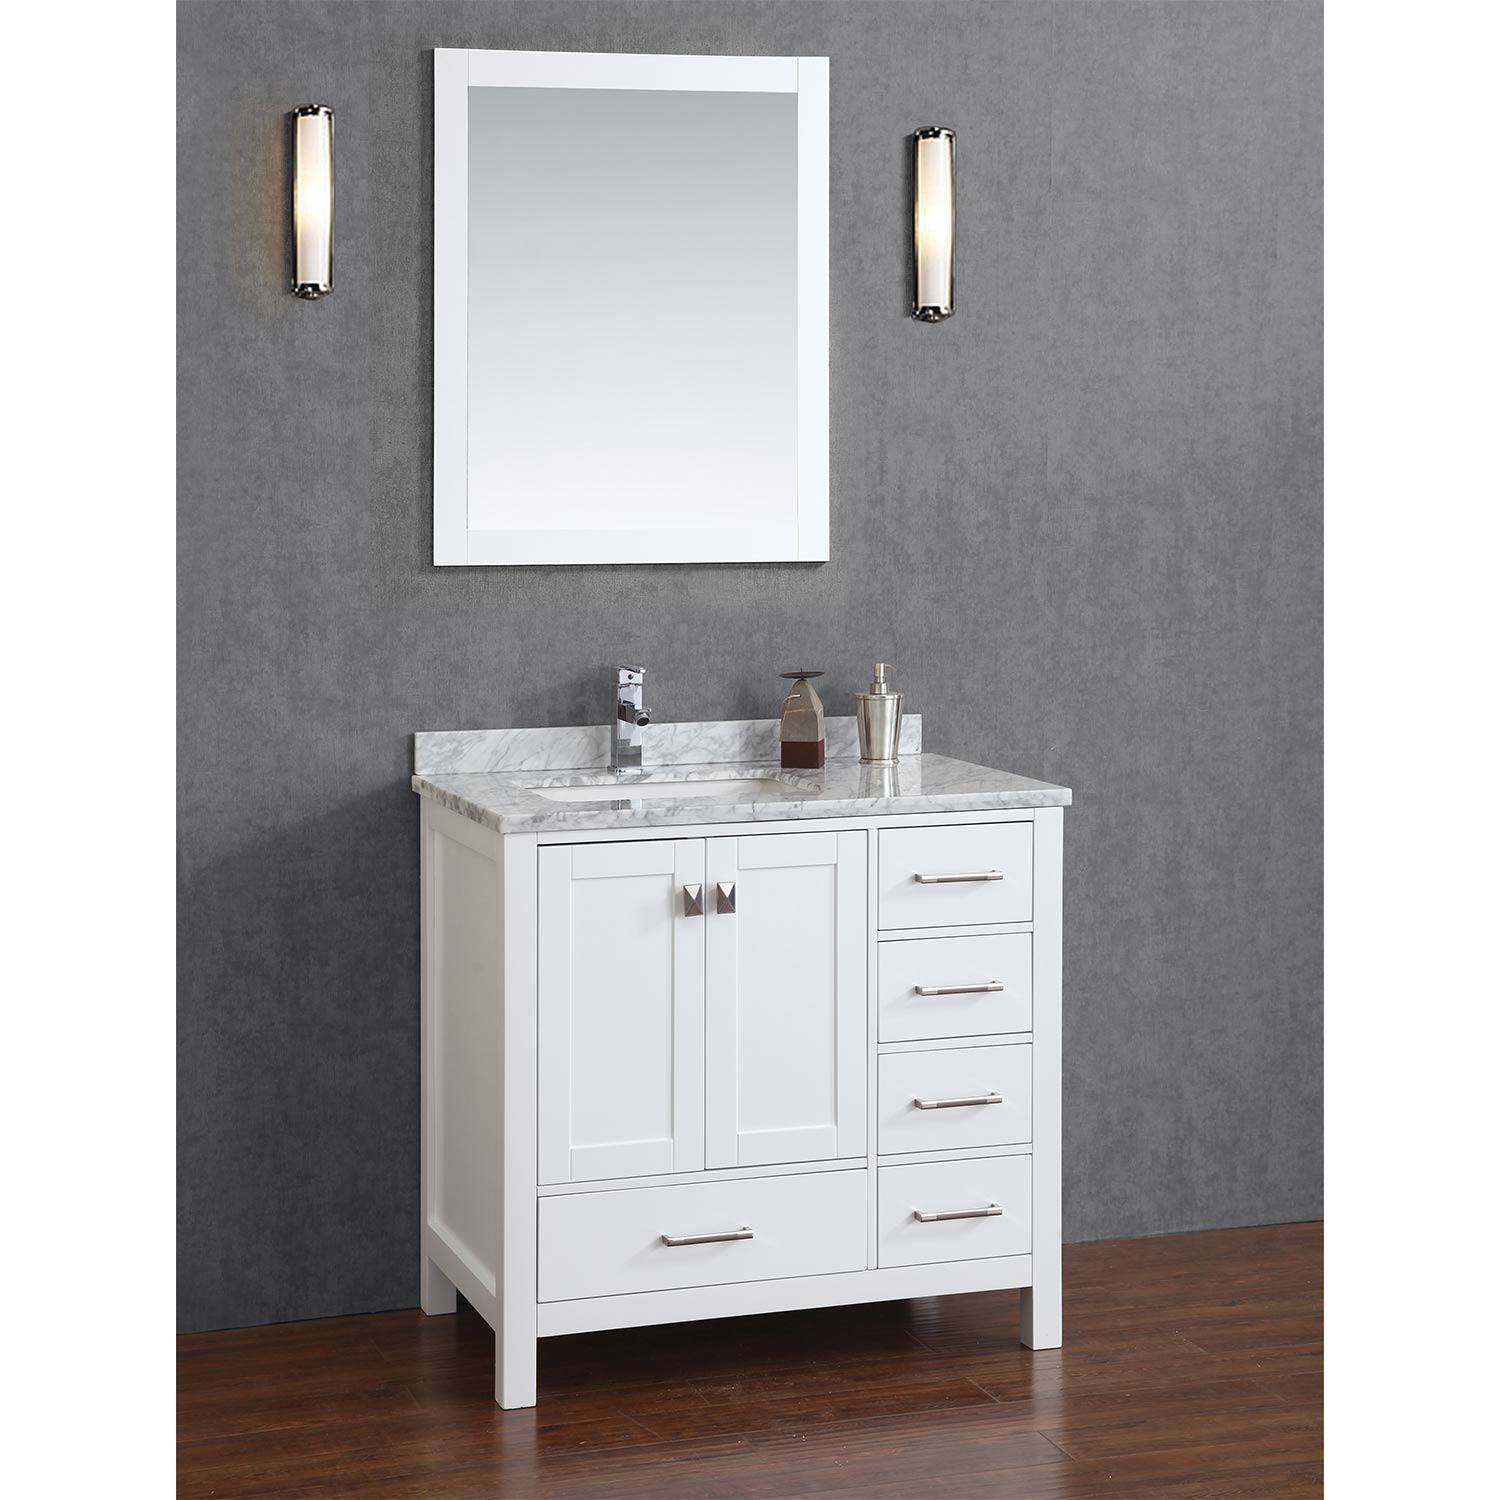 vanities aria sink bath vanity consoles bathroom transitional design carrara product marble home and white